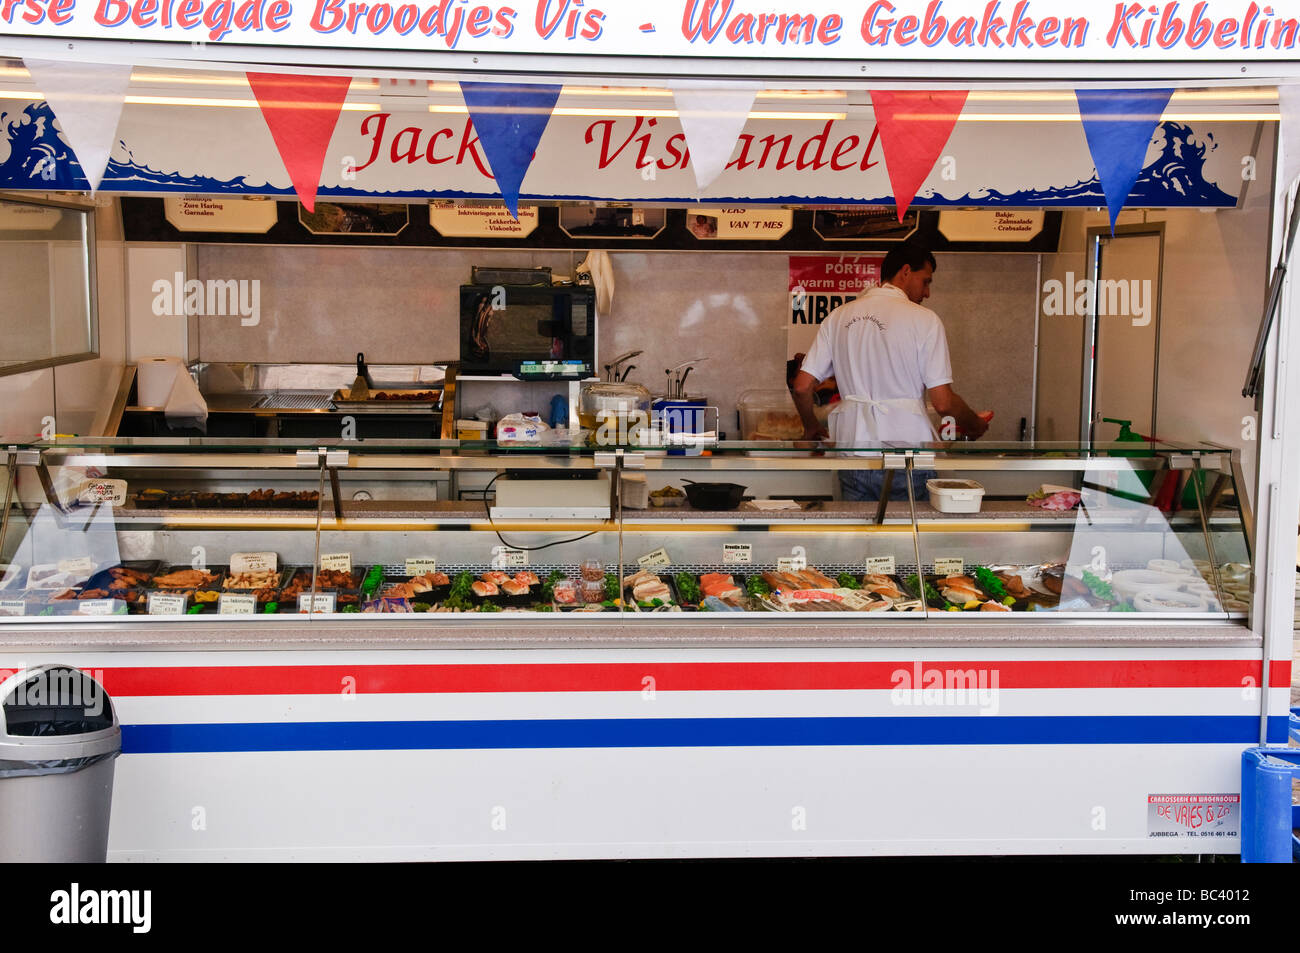 71a7b6dbd0 Traditional Dutch snacks on sale from a mobile catering van Stock ...